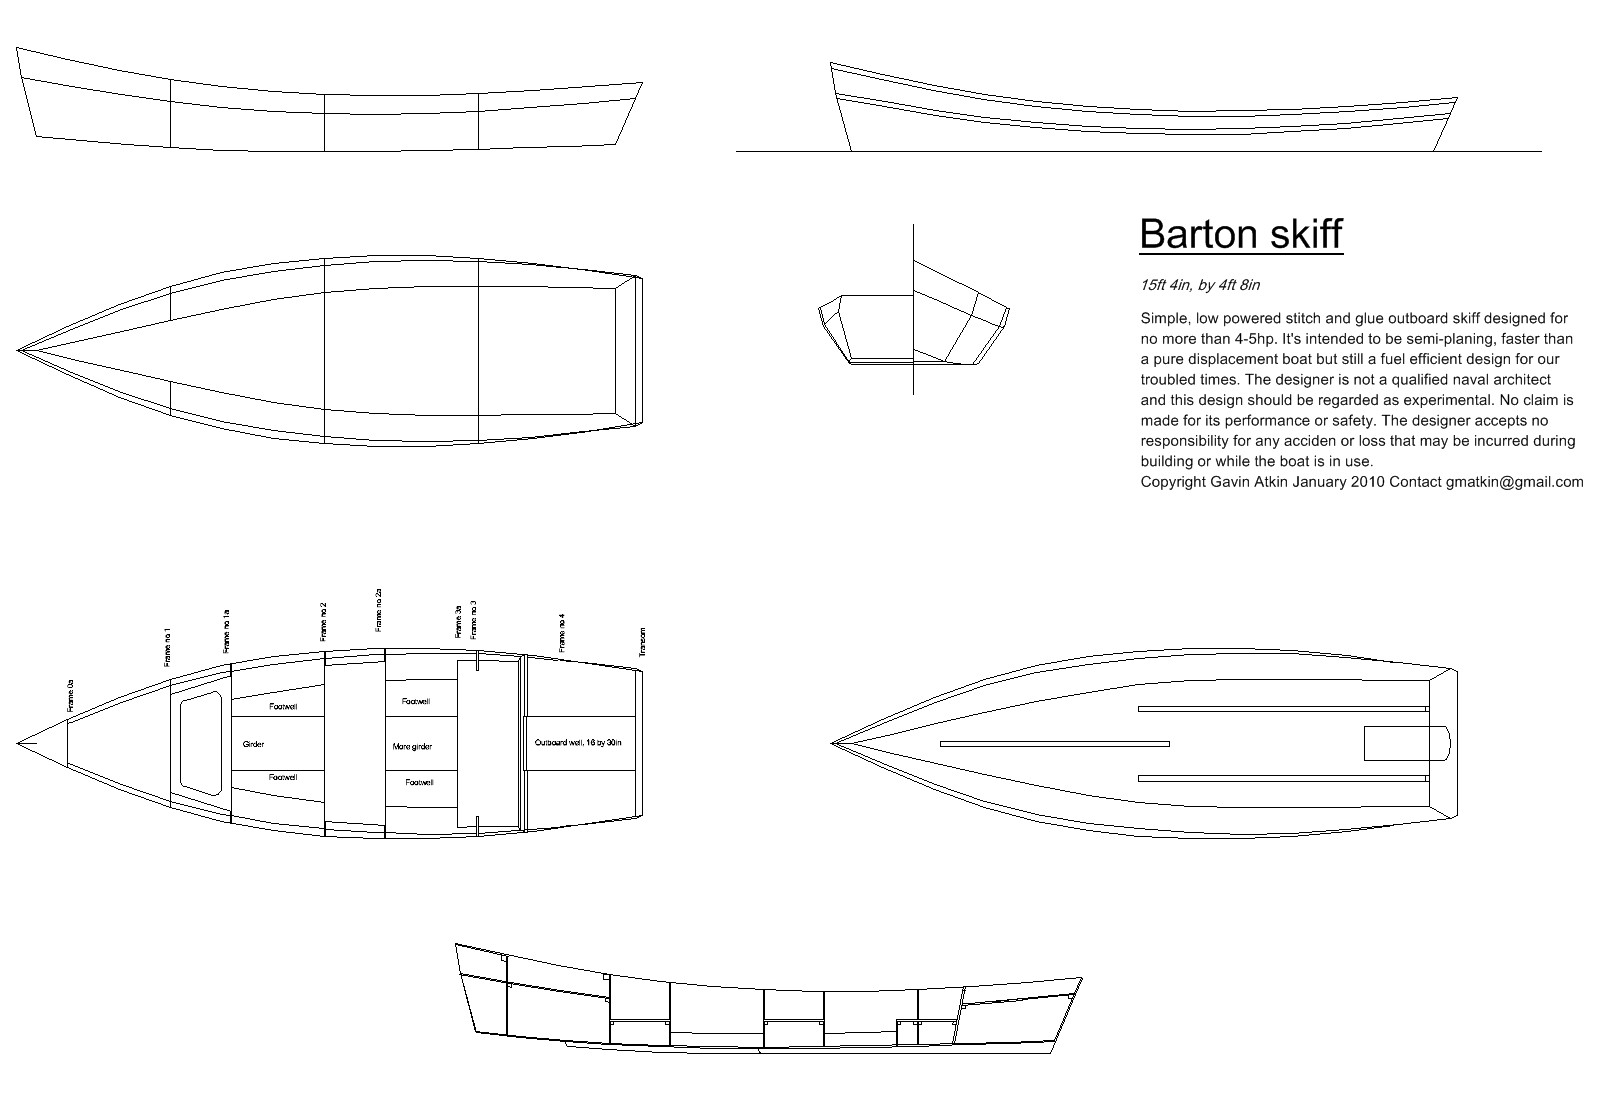 At Last Construction Drawings For The Barton Skiff Previously Known As The Low Power Skiff on key drawing